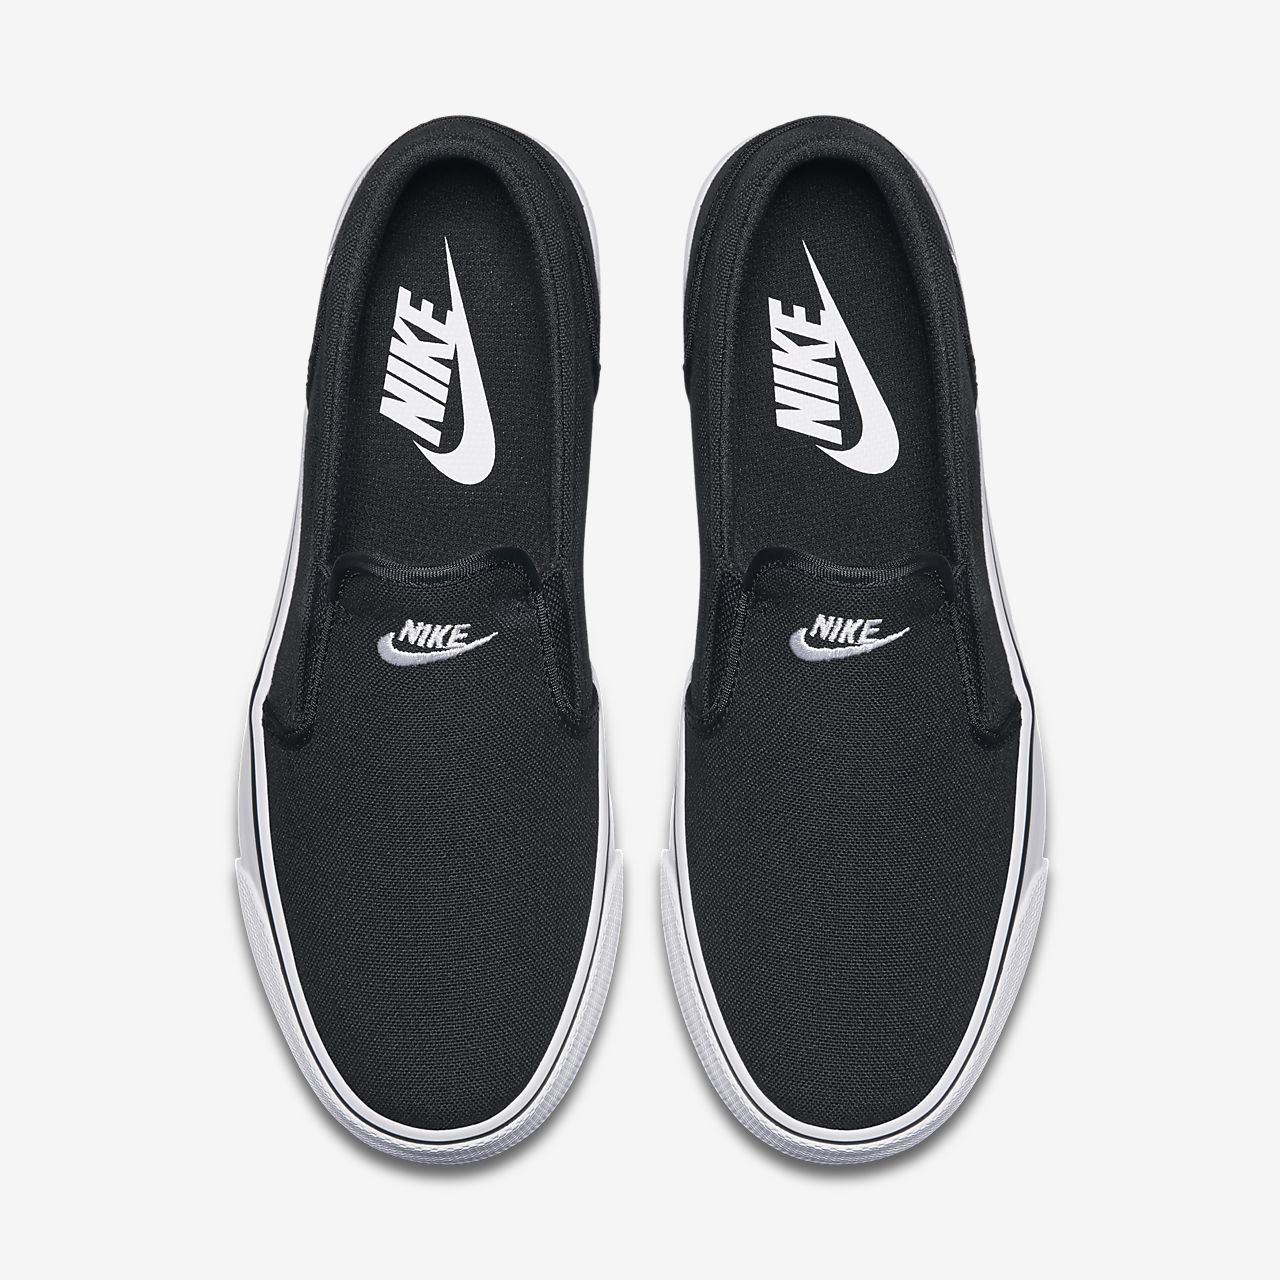 Nike Training Shoes Slip On